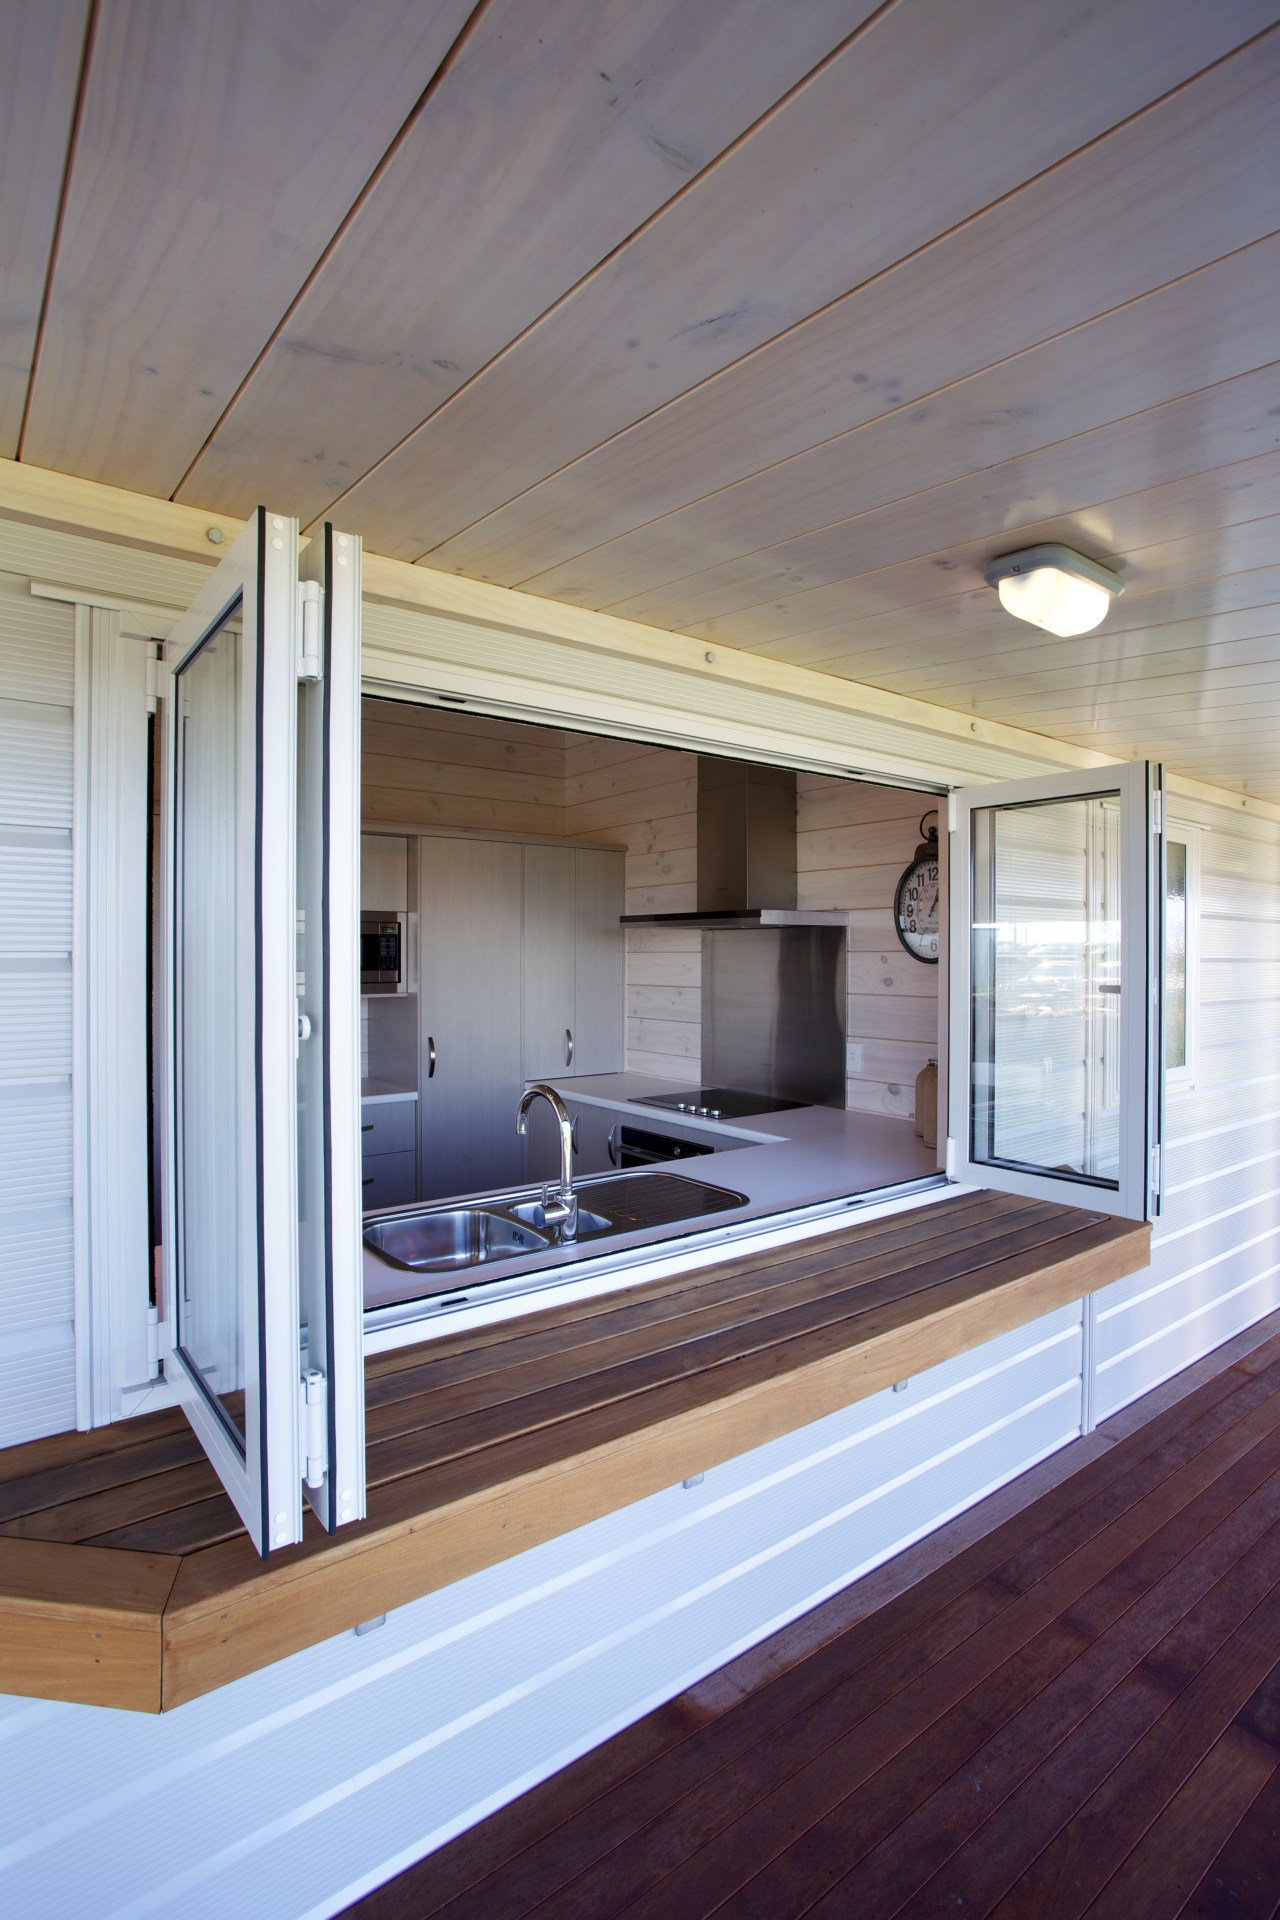 Serving hatch from kitchen to deck on Lockwood architecture, house, interior design, wood, gray